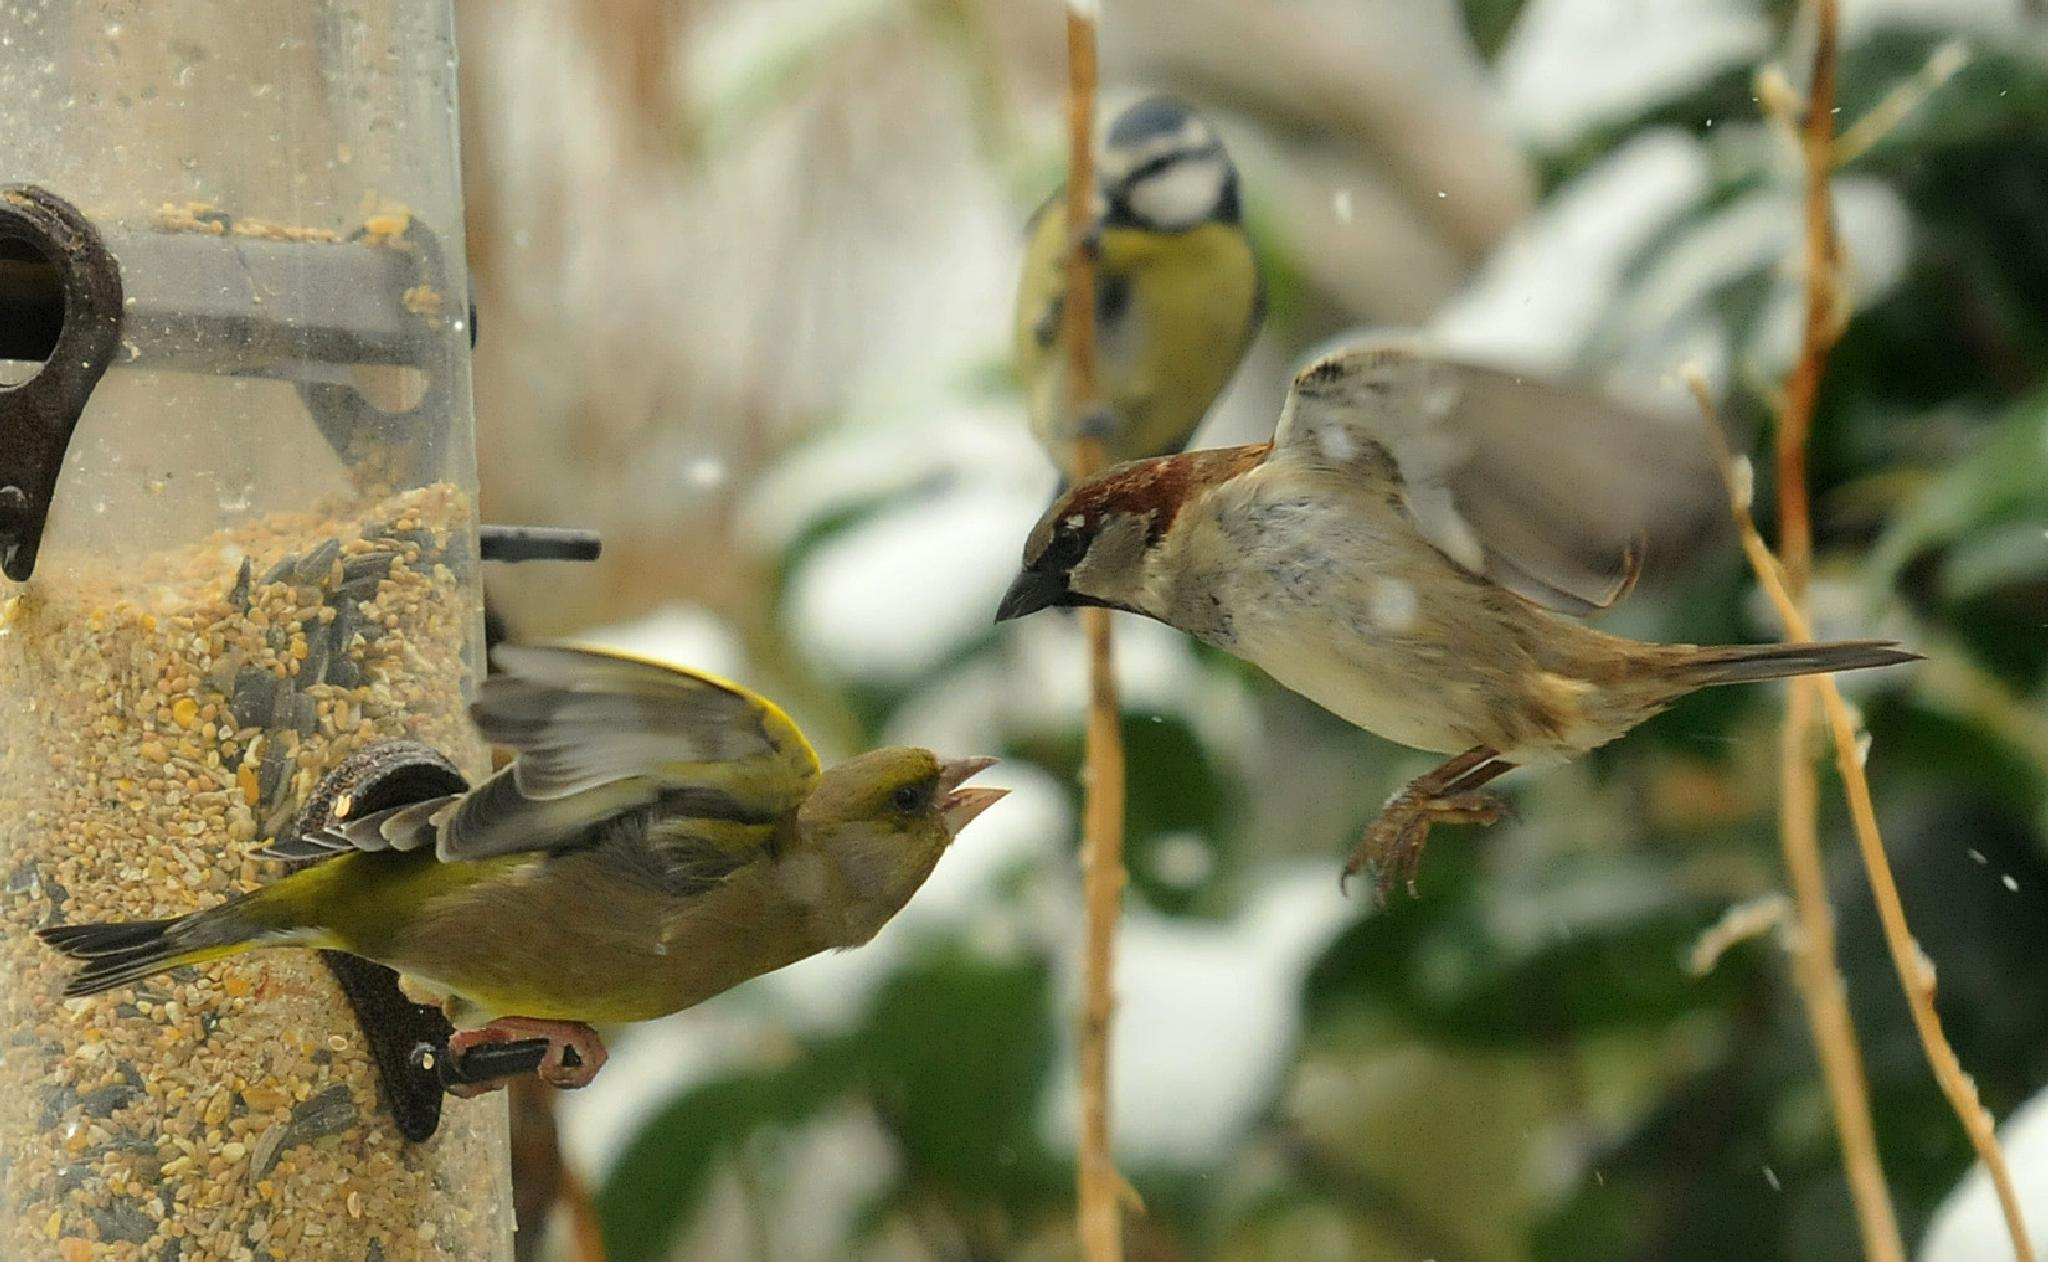 Greenfinch V The Sparrow by Paul.Taylor